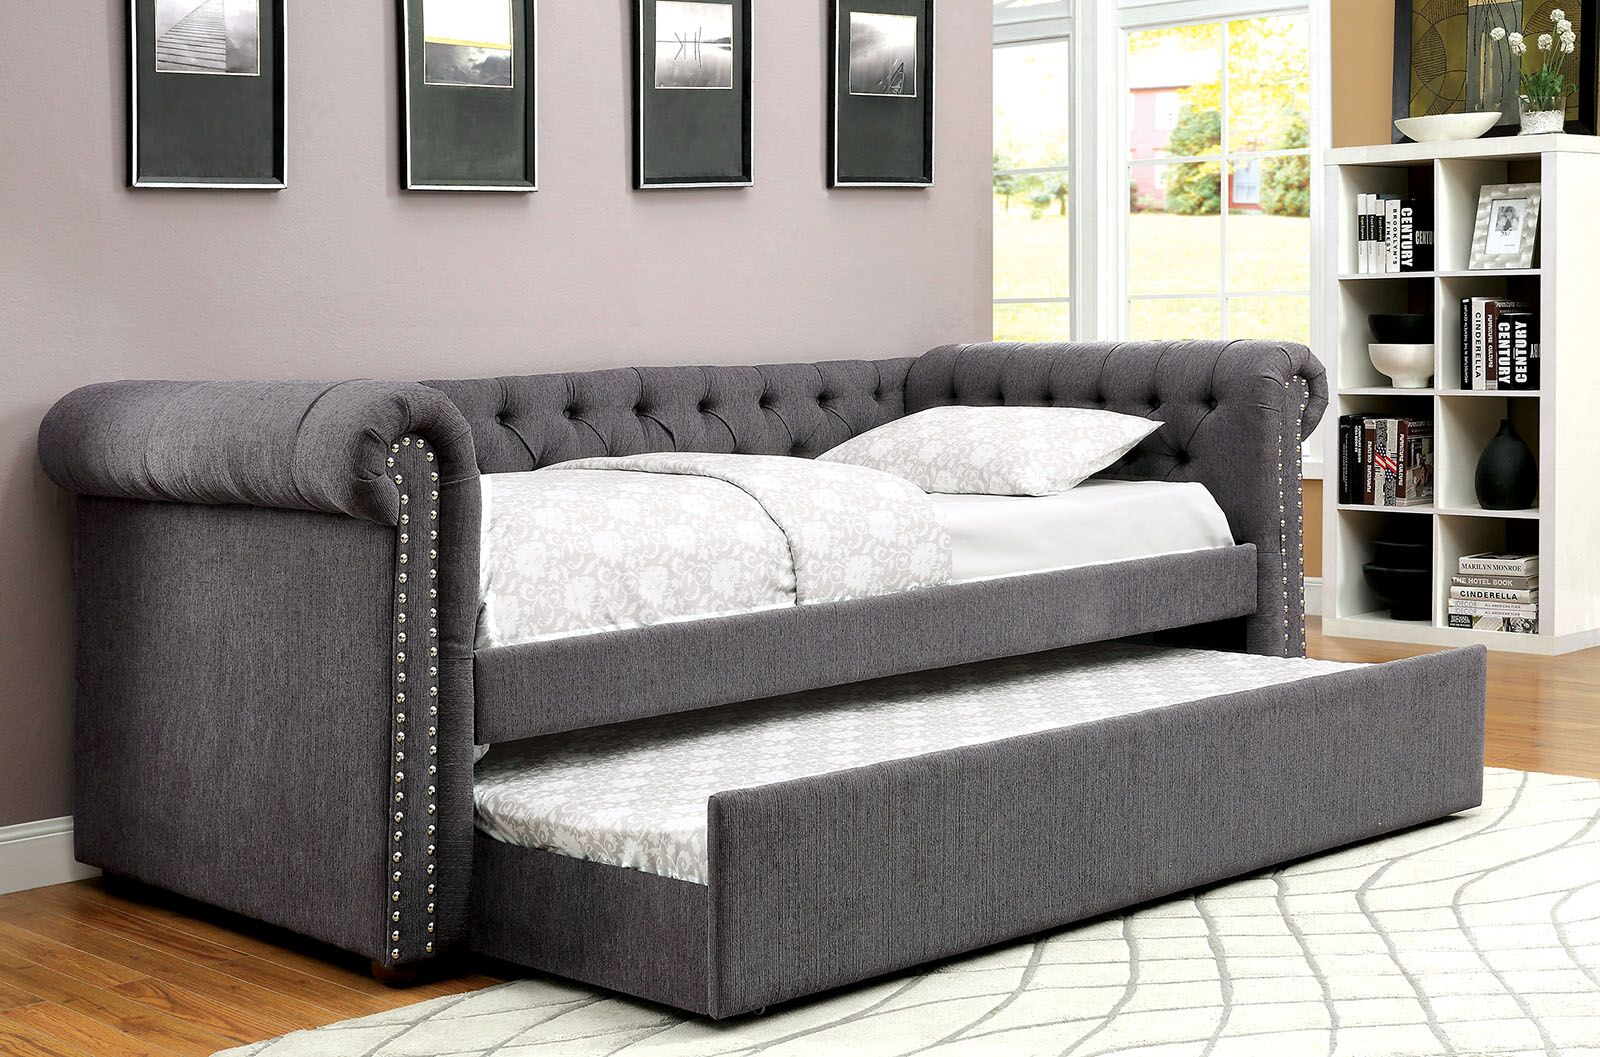 Baggs Daybed with Trundle Color: Gray, Size: Queen